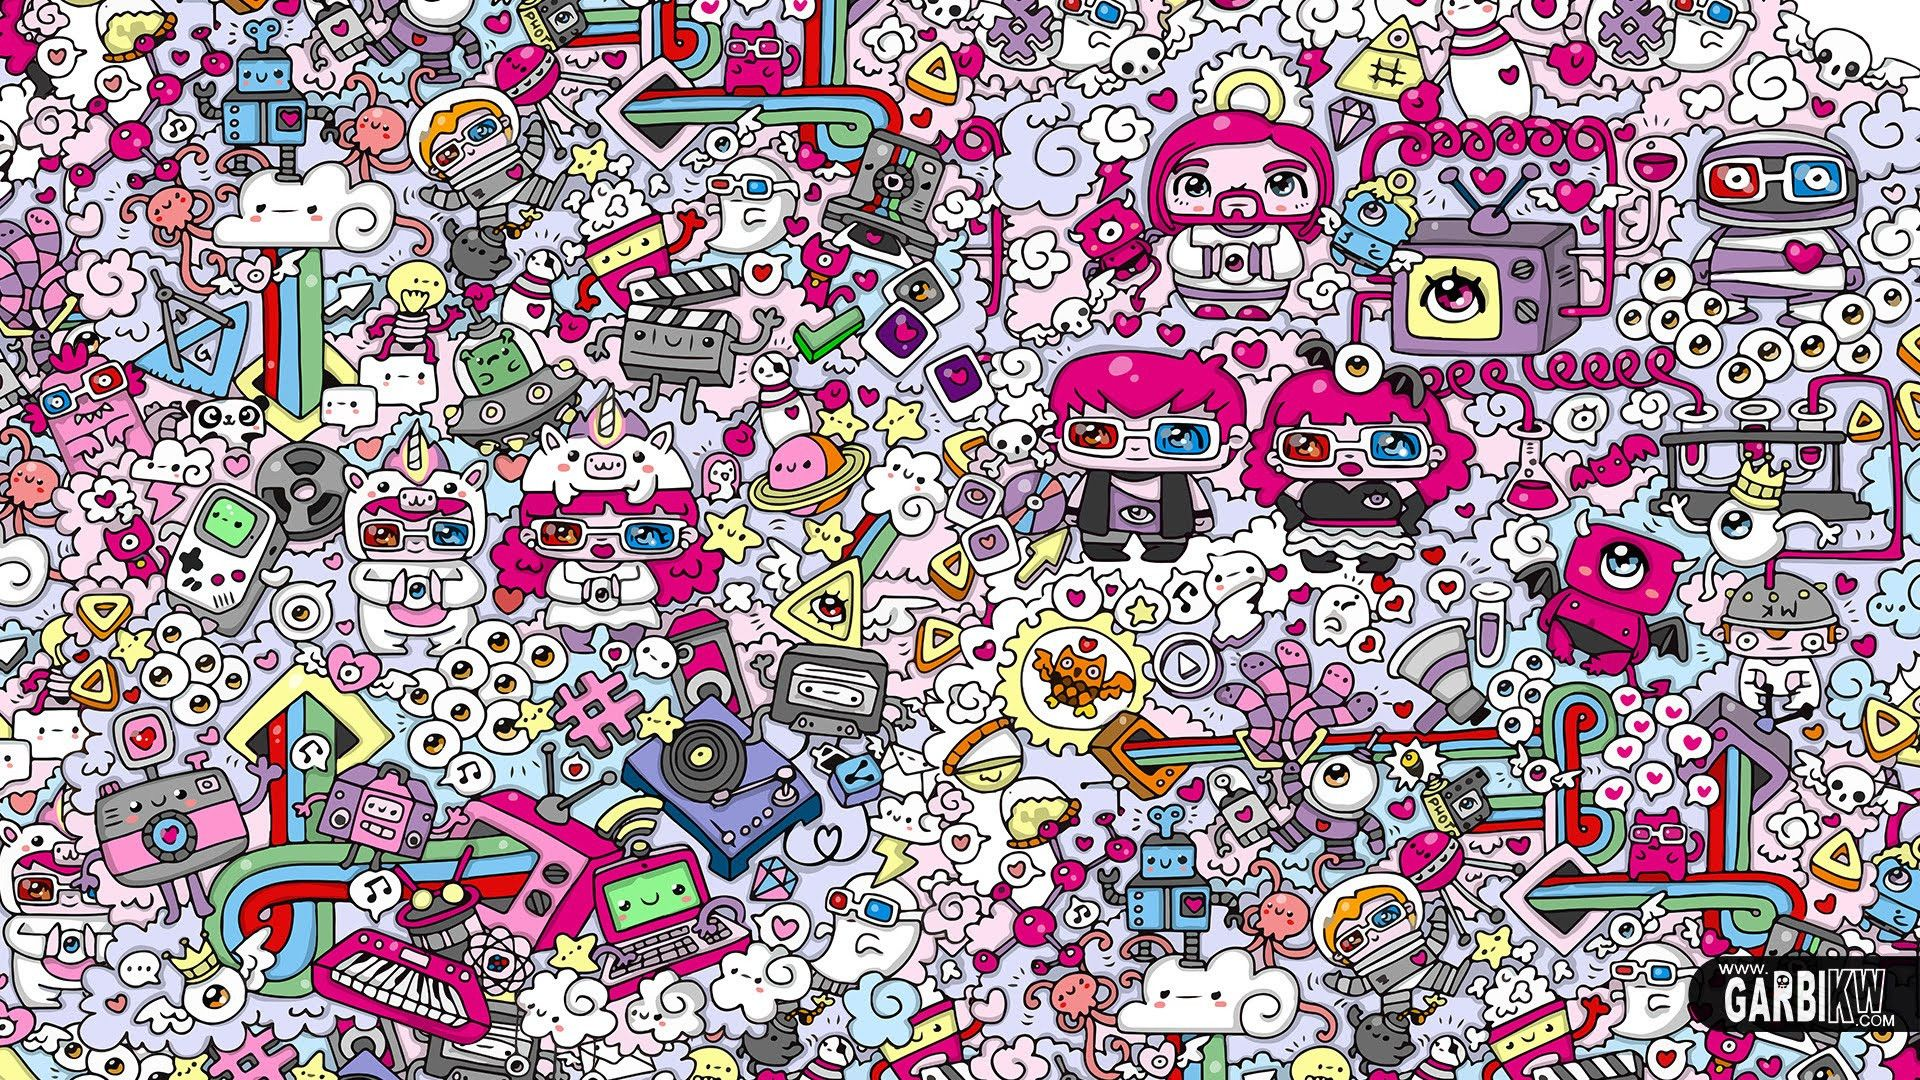 1920x1080 Doodle Wallpaper (the best 39+ images in 2018)